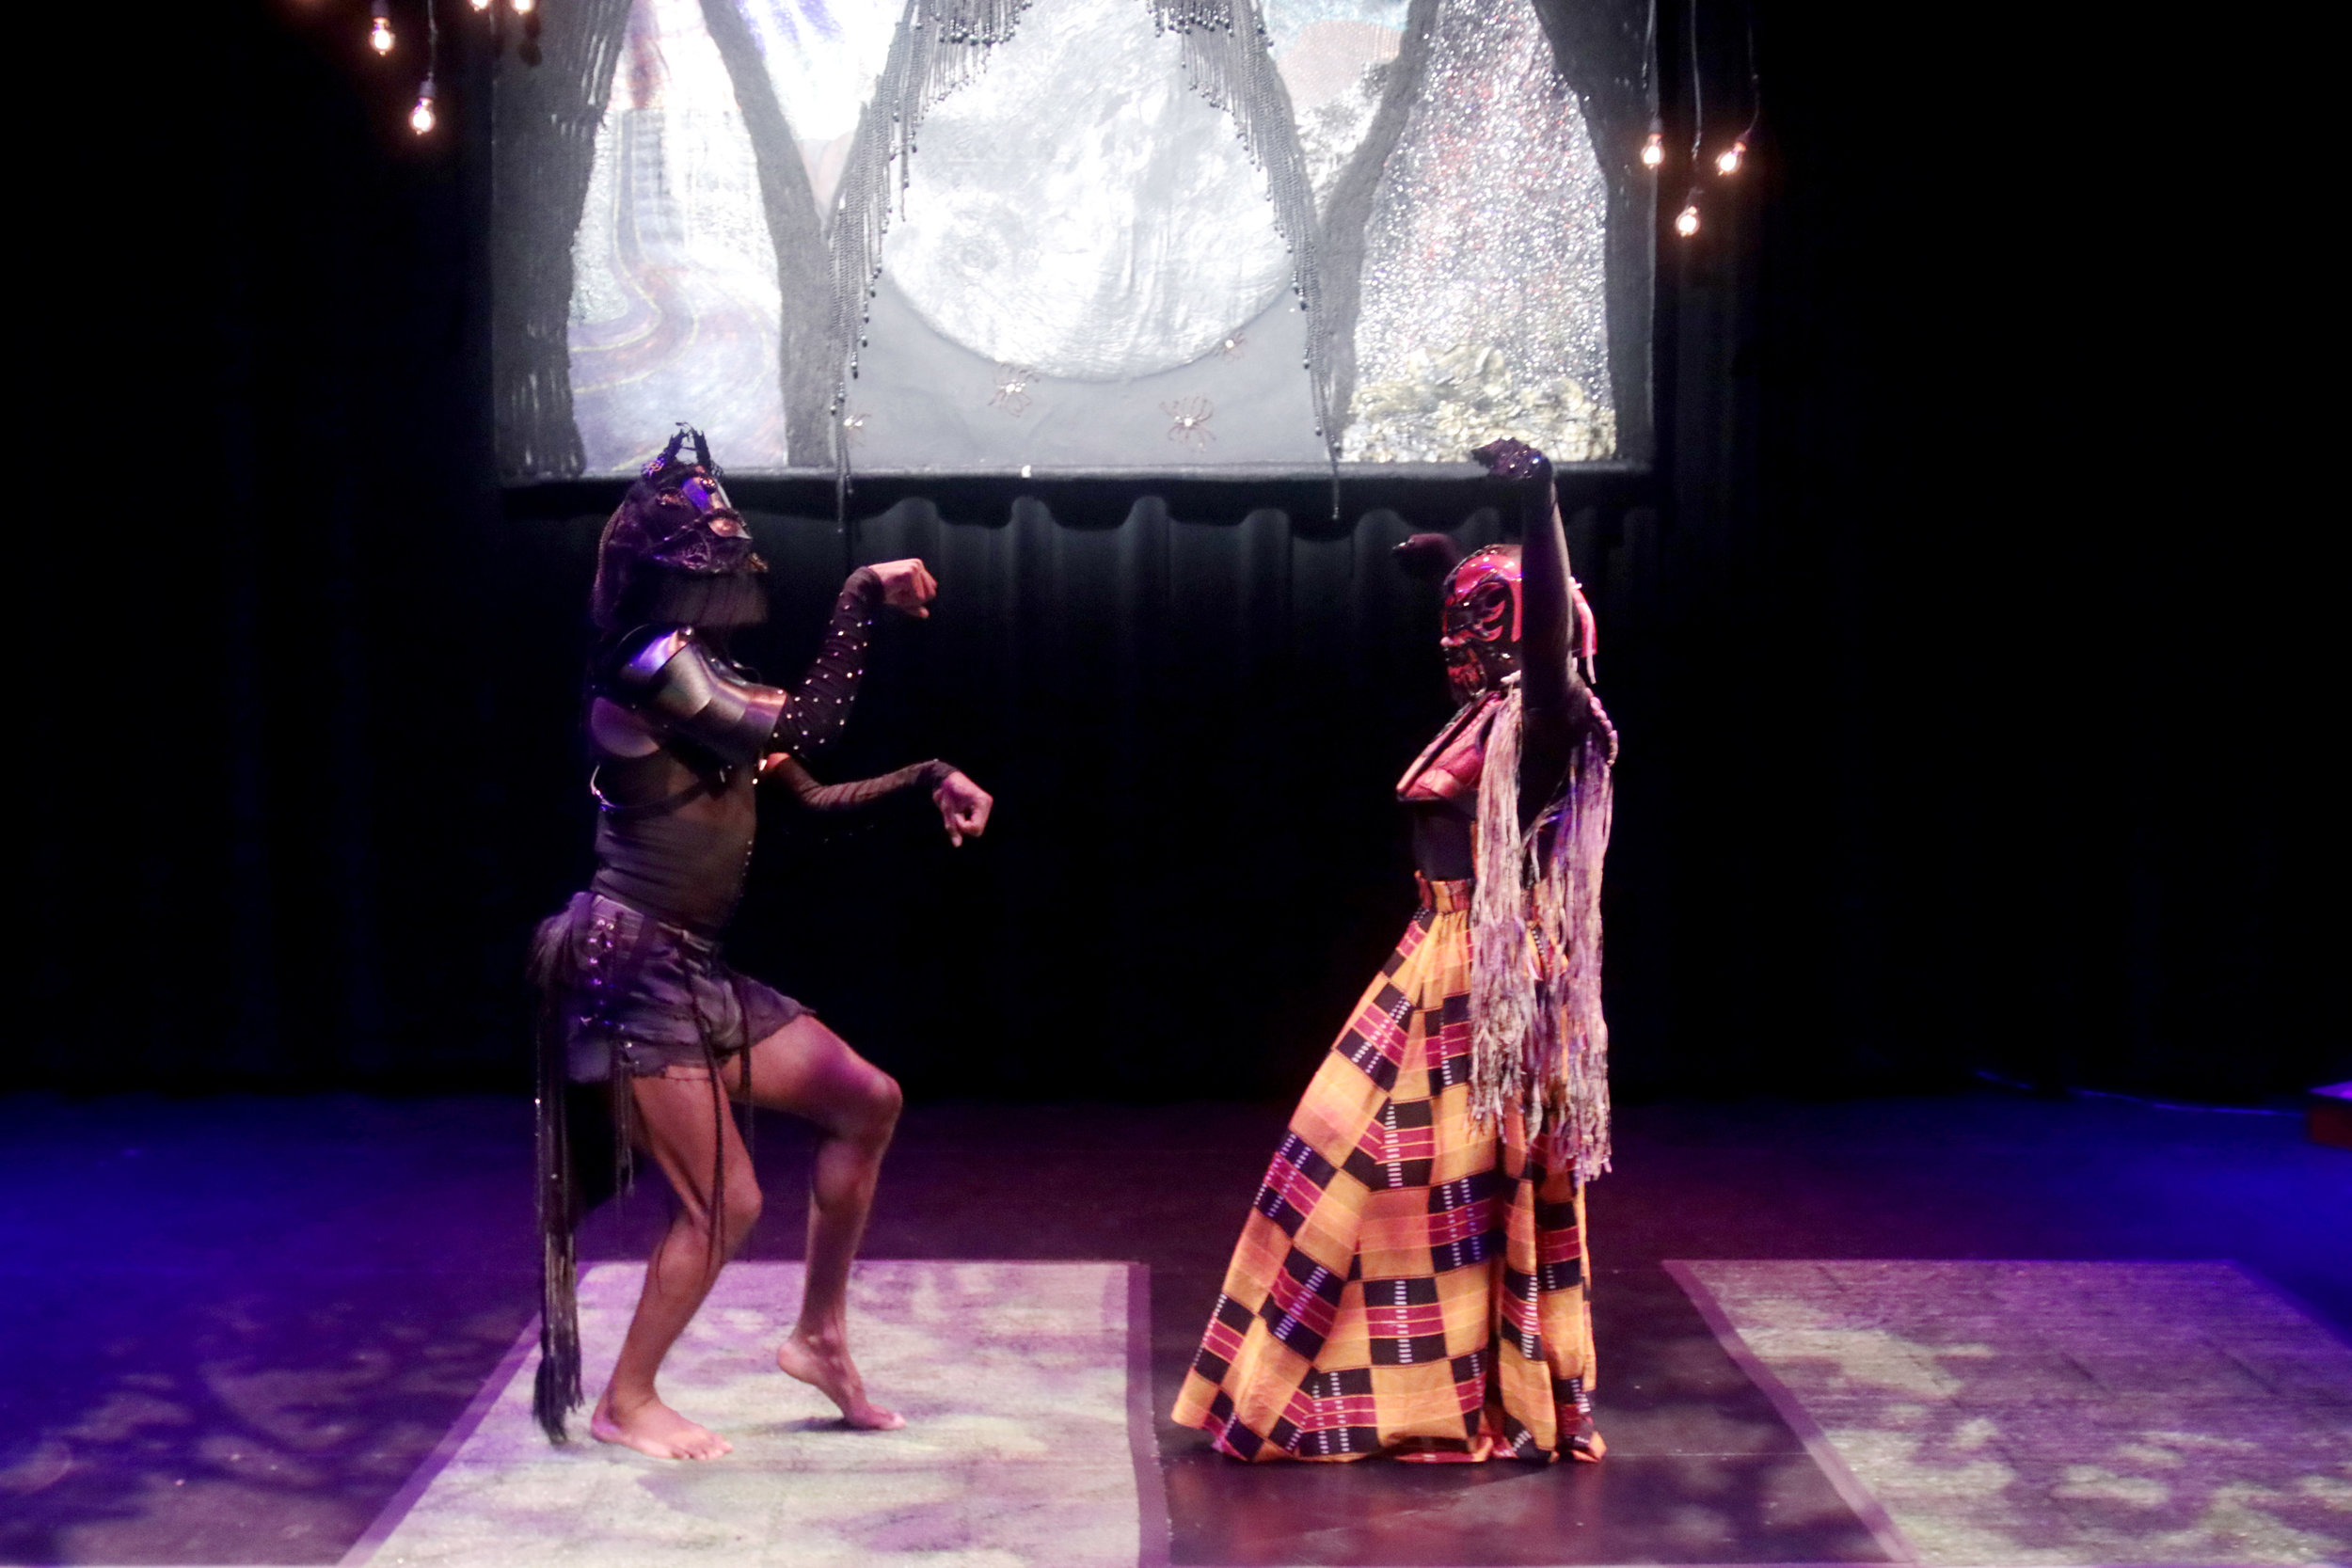 Hawa (The Ride) with The Pilot Dance Project  Orlando Hunter, Jr & Ashley Horn Nott  Photo by: Pin Lim